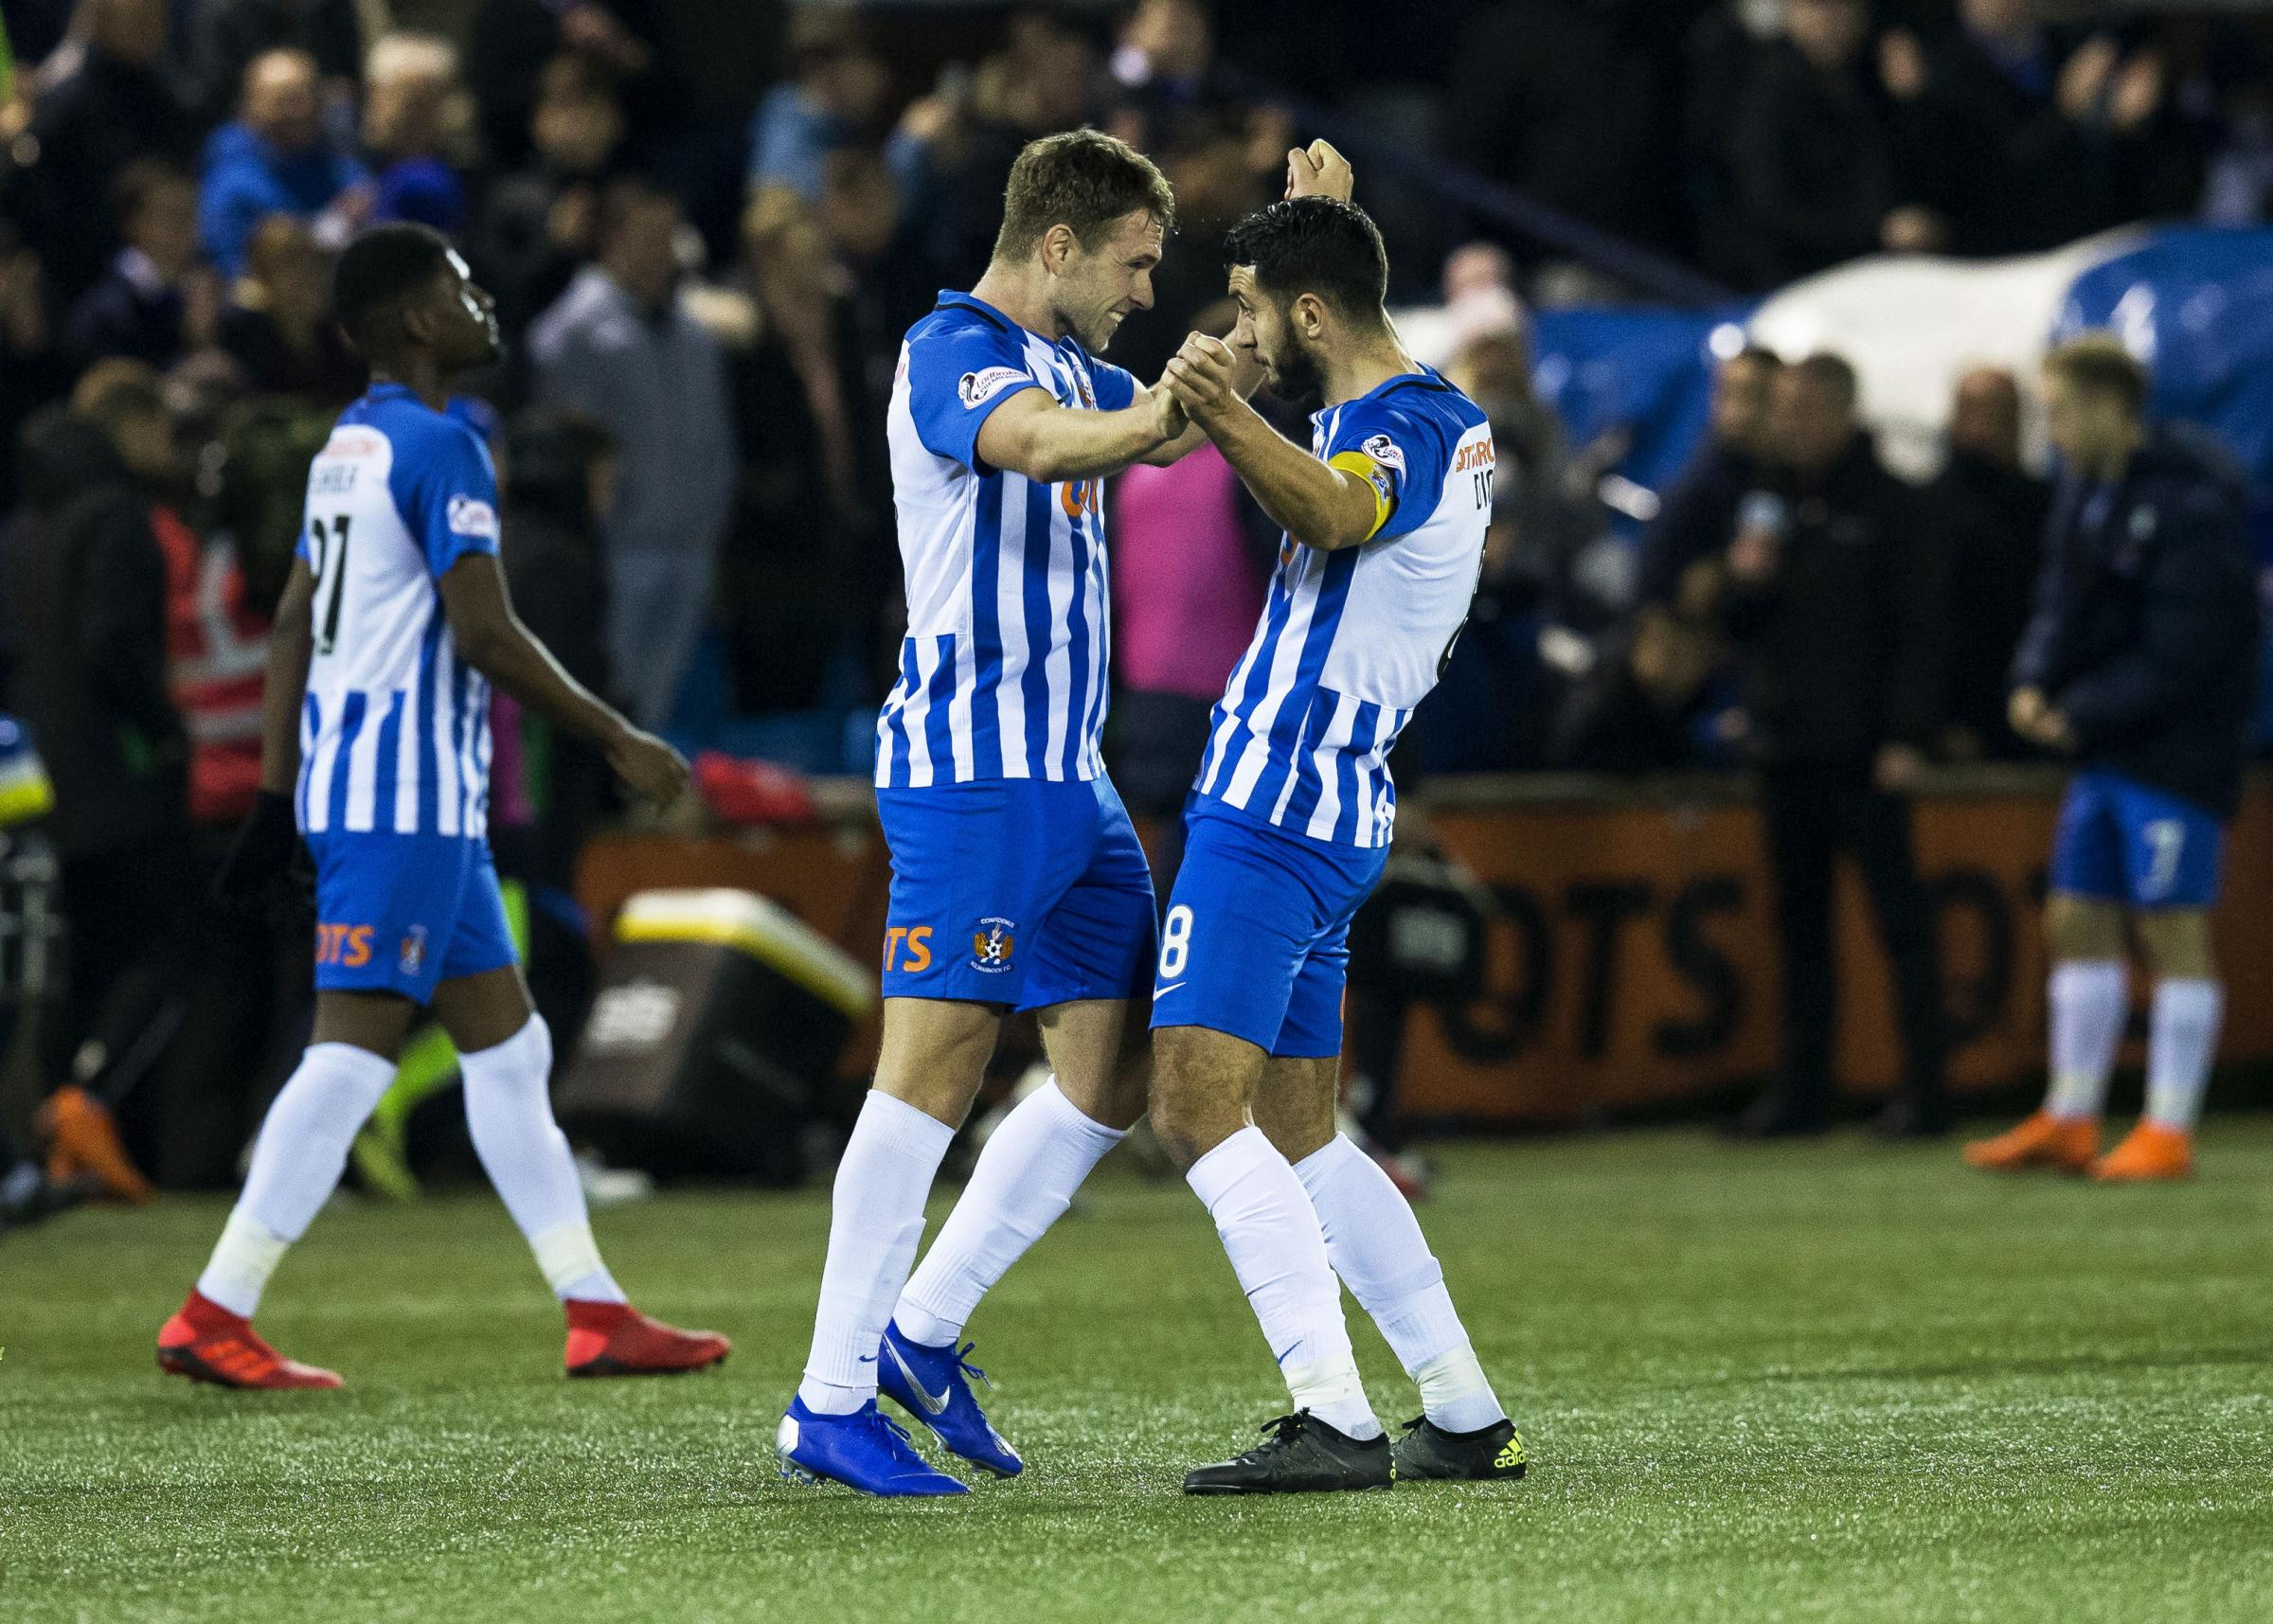 01/12/18 LADBROKES PREMIERSHIP.KILMARNOCK V HIBERNIAN (3-0).RUGBY PARK - KILMARNOCK.Kilmarnock's Greg Stewart and Alan Dicker celebrate at Full Time.